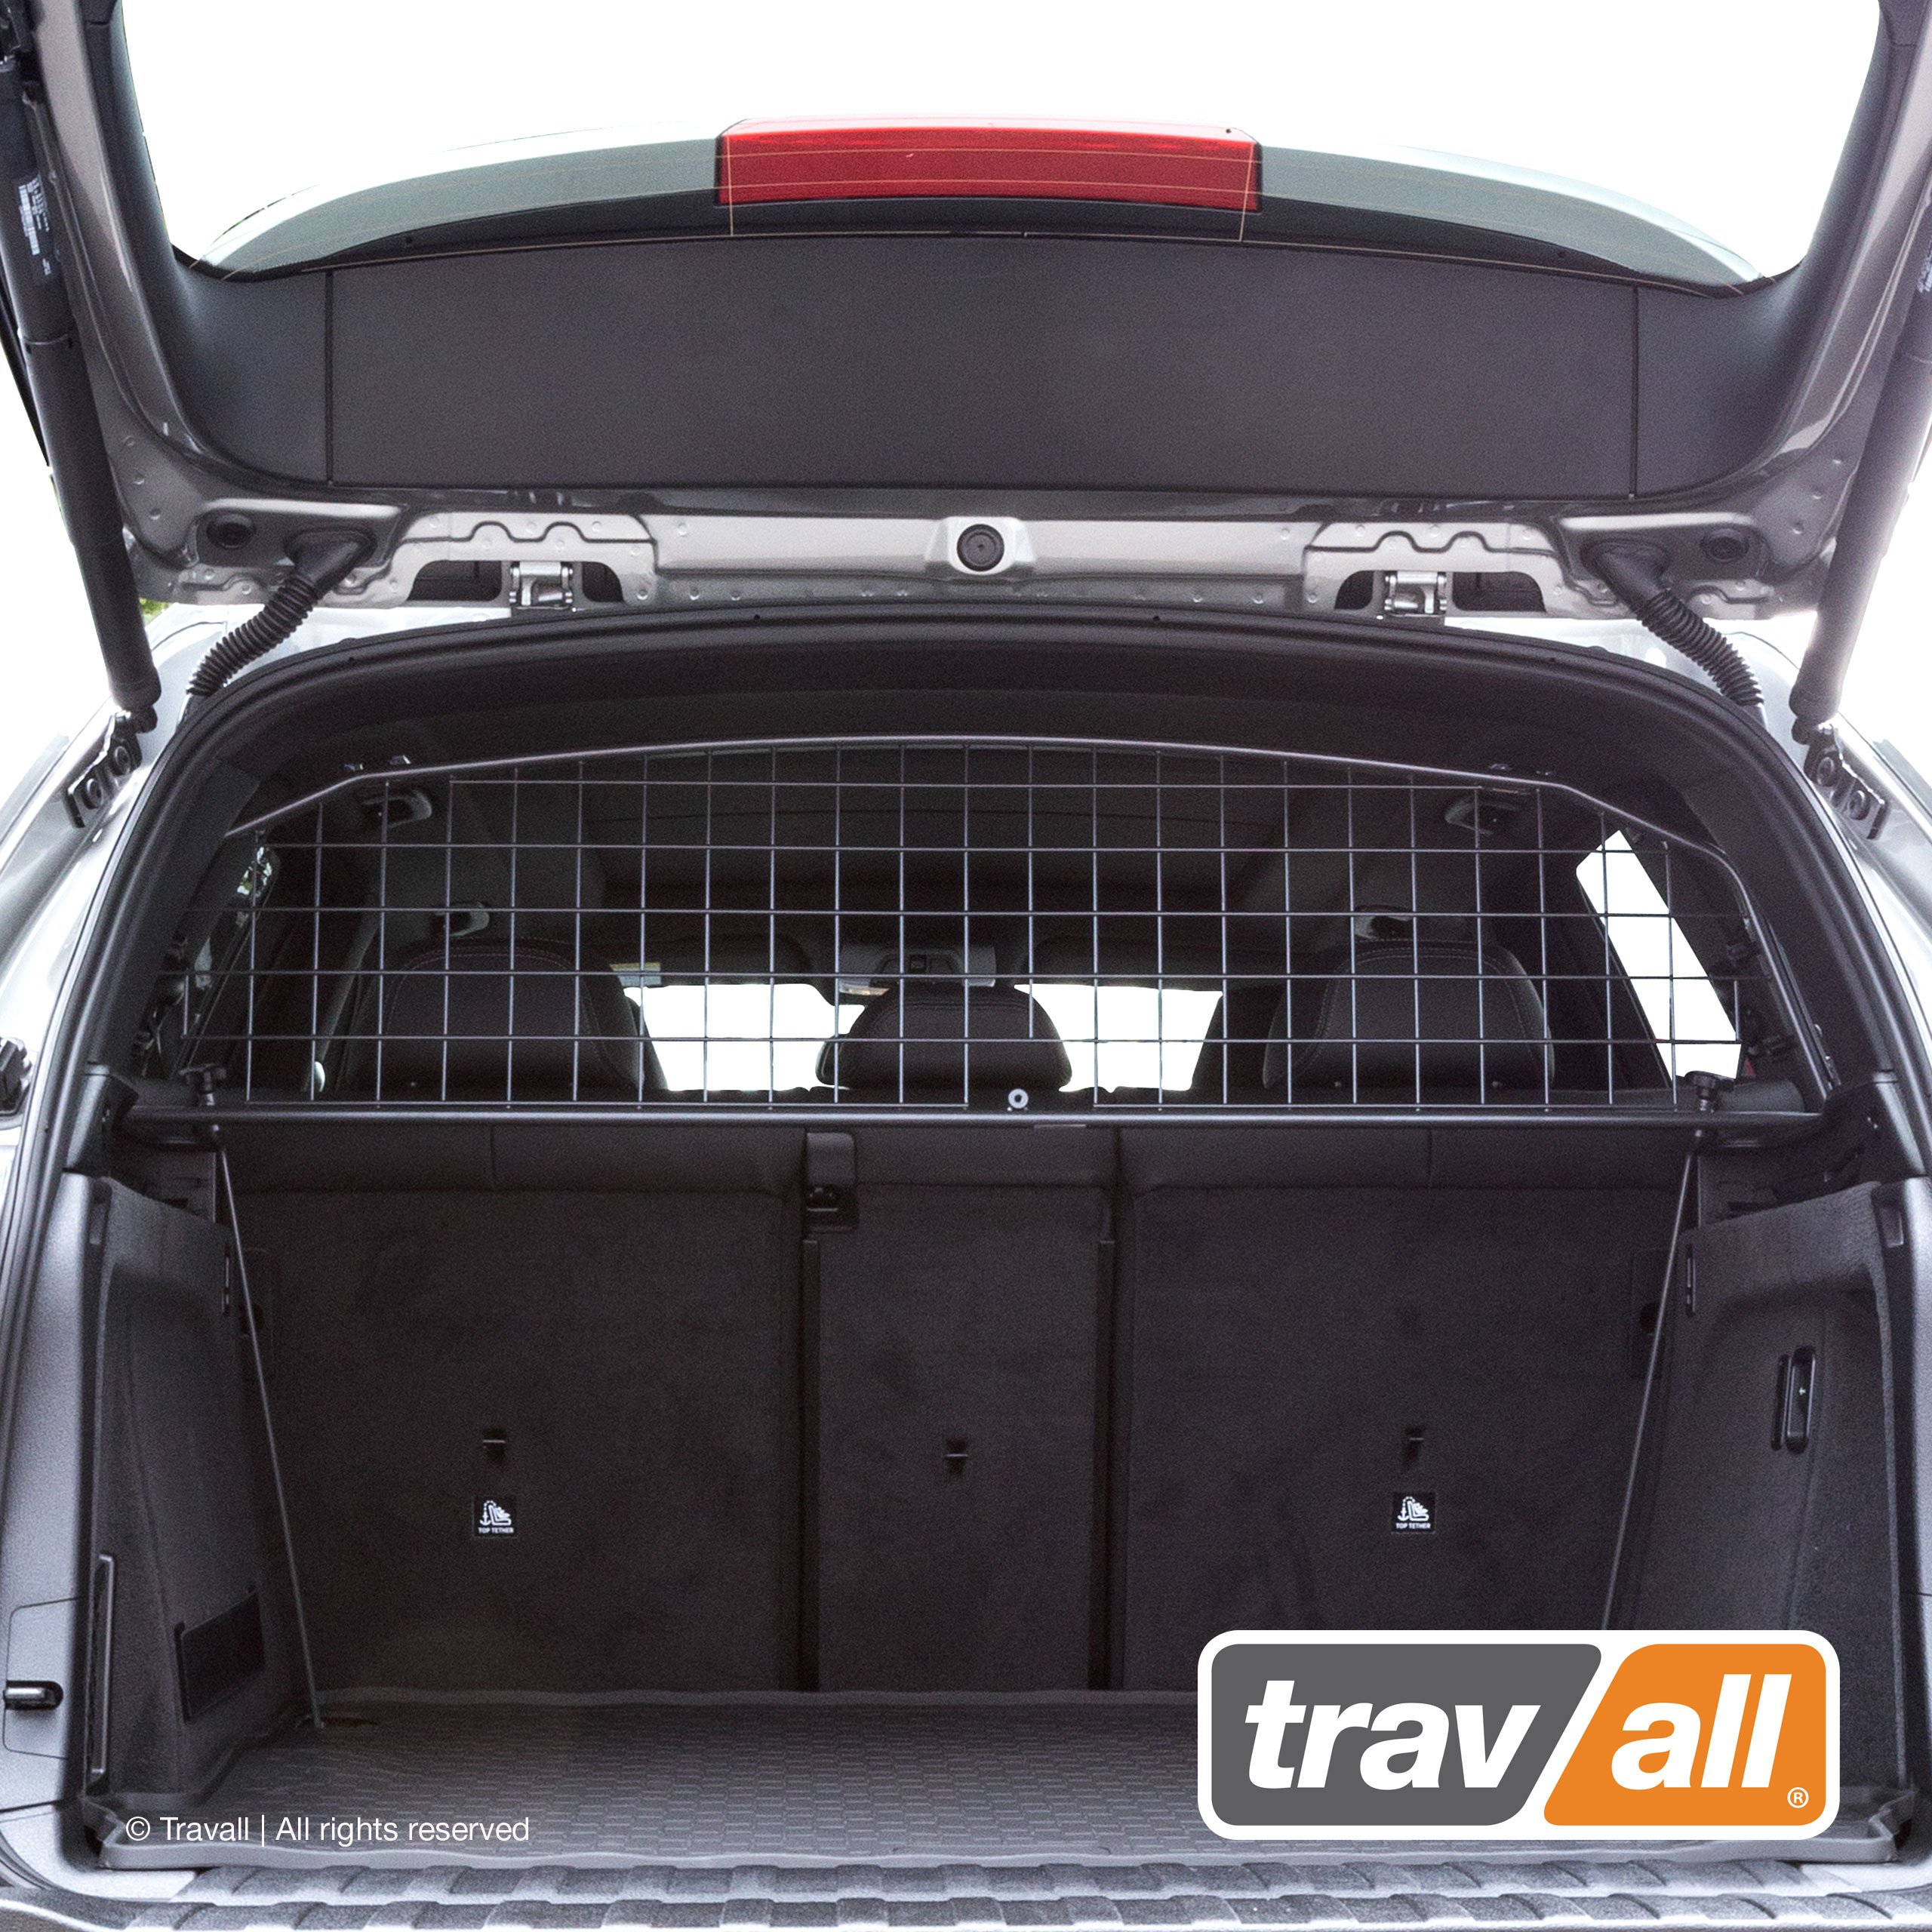 Travall Guard Compatible with BMW X5 (2006-2018) and BMW X5 M (2010-2018) TDG1166 - Rattle-Free Steel Pet Barrier